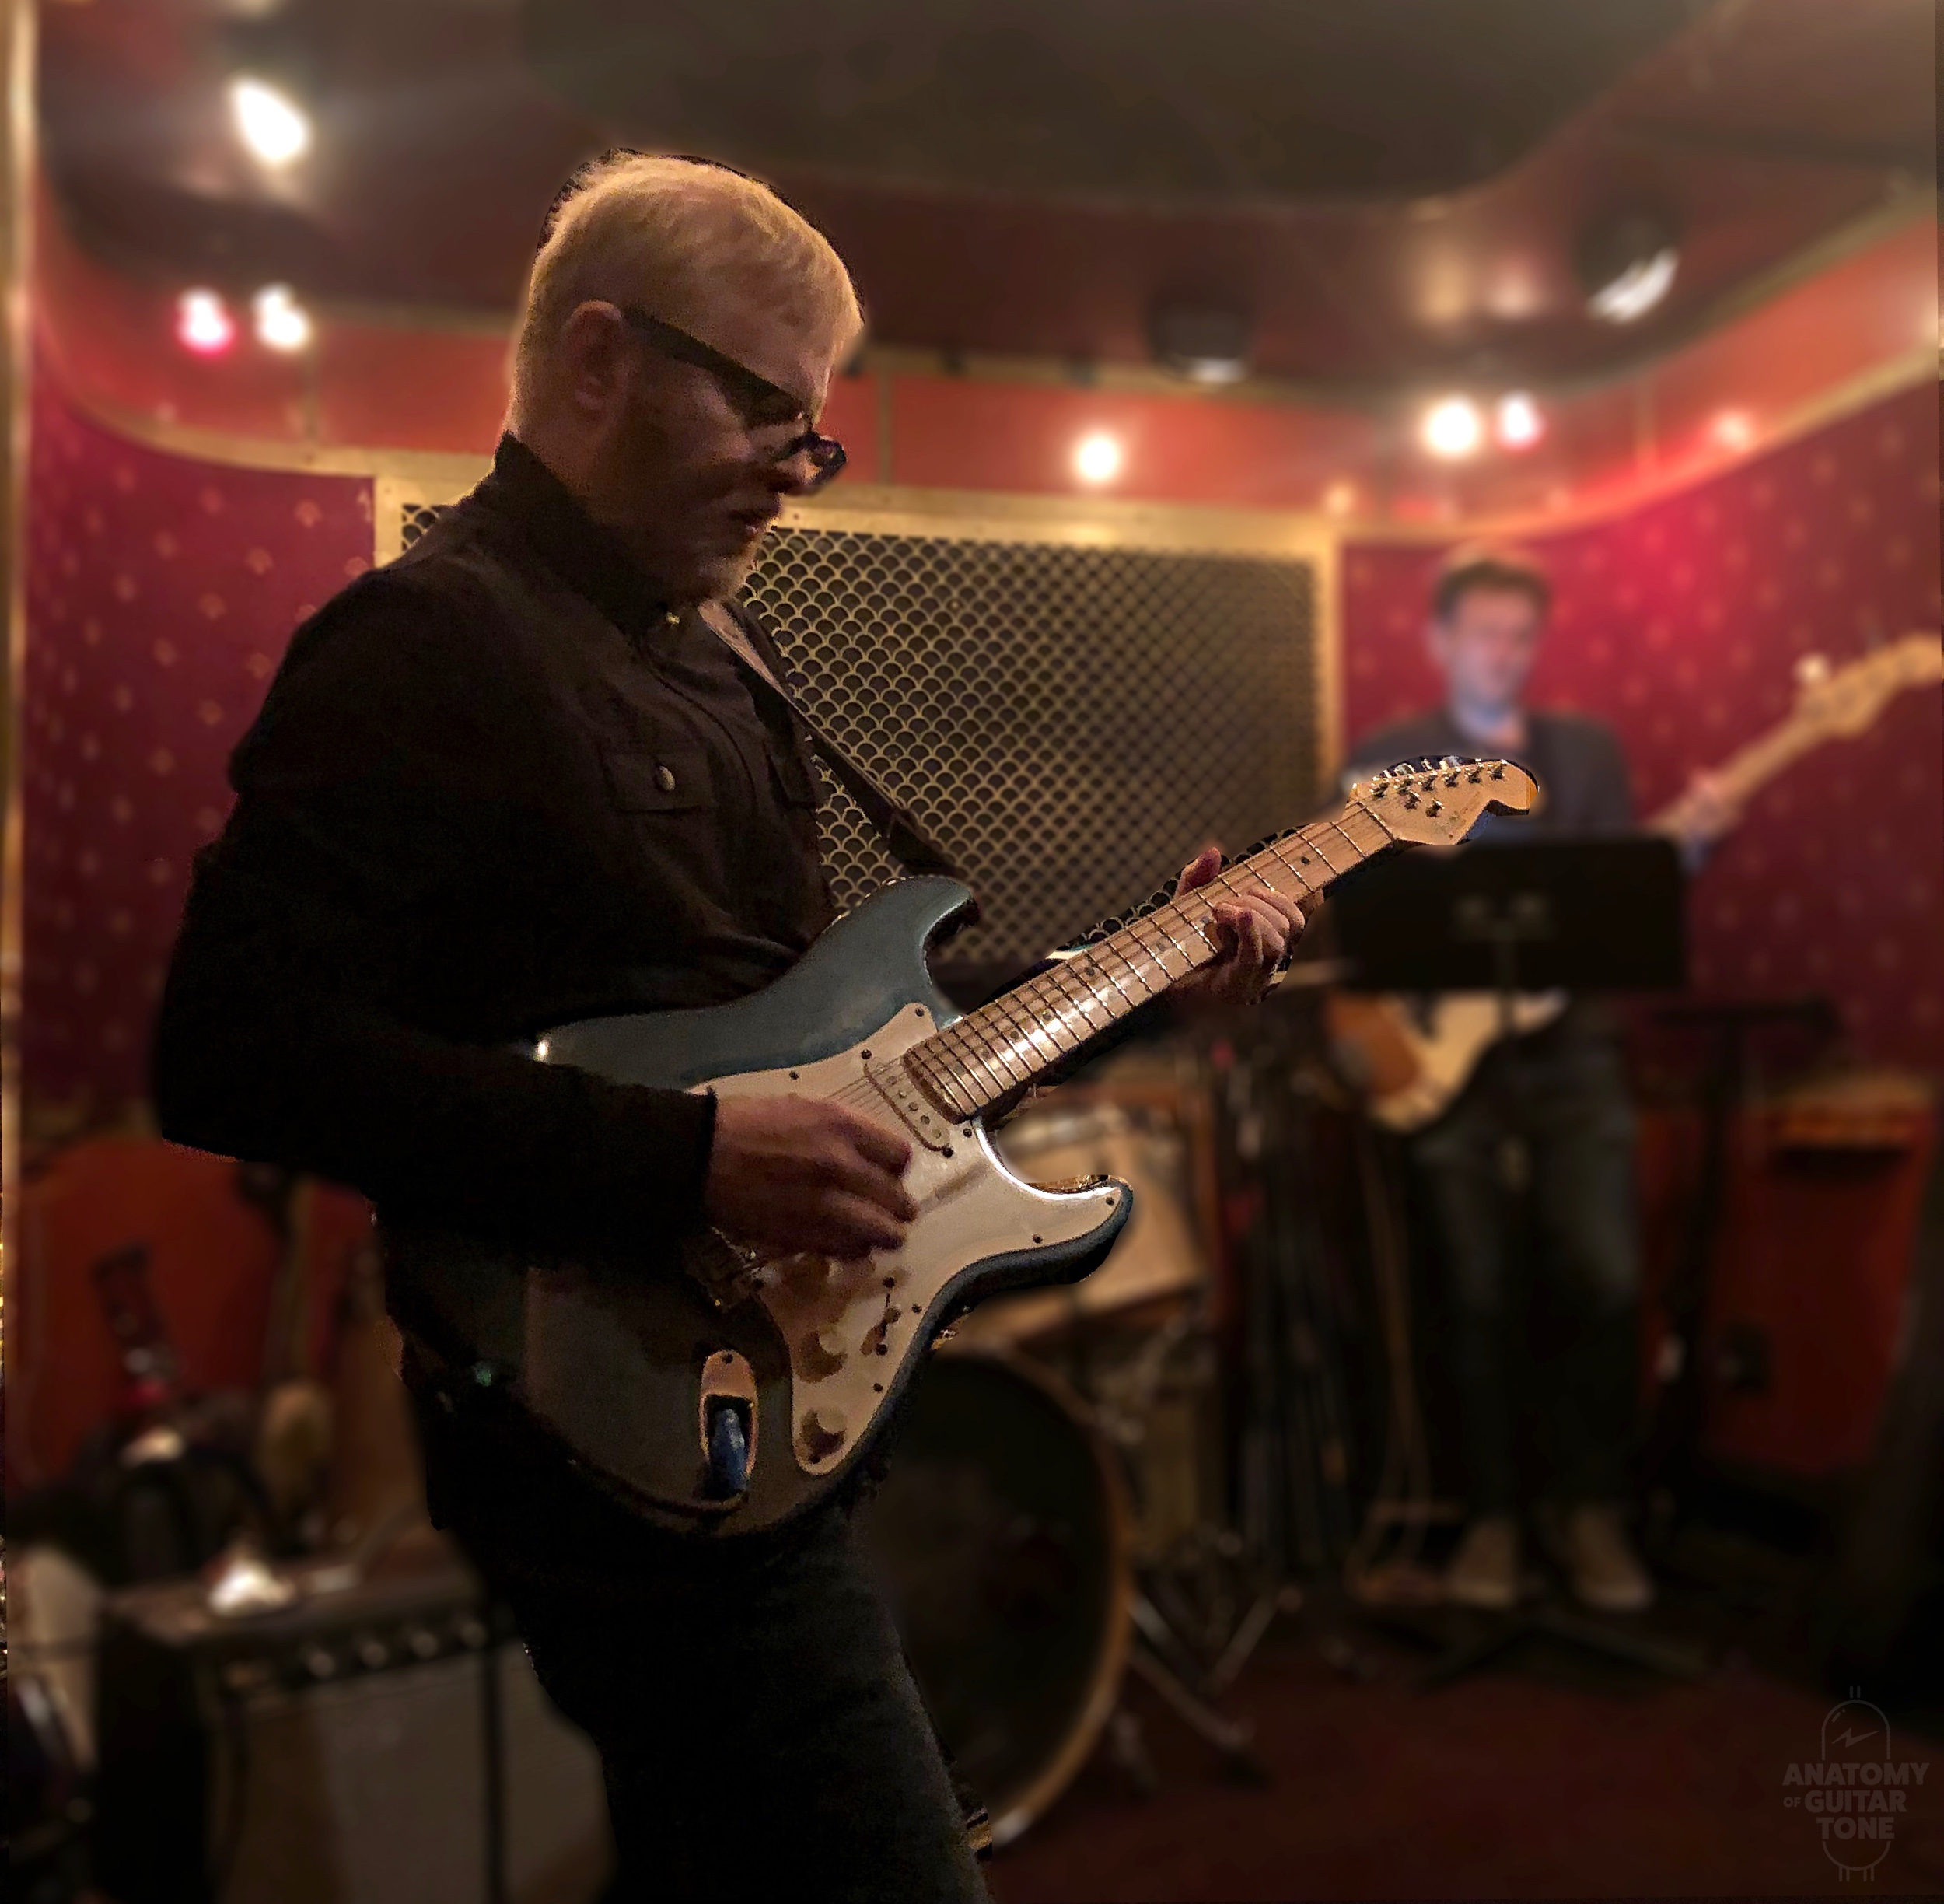 Playing Pete's Candy store 2019 using a 12-watt amp